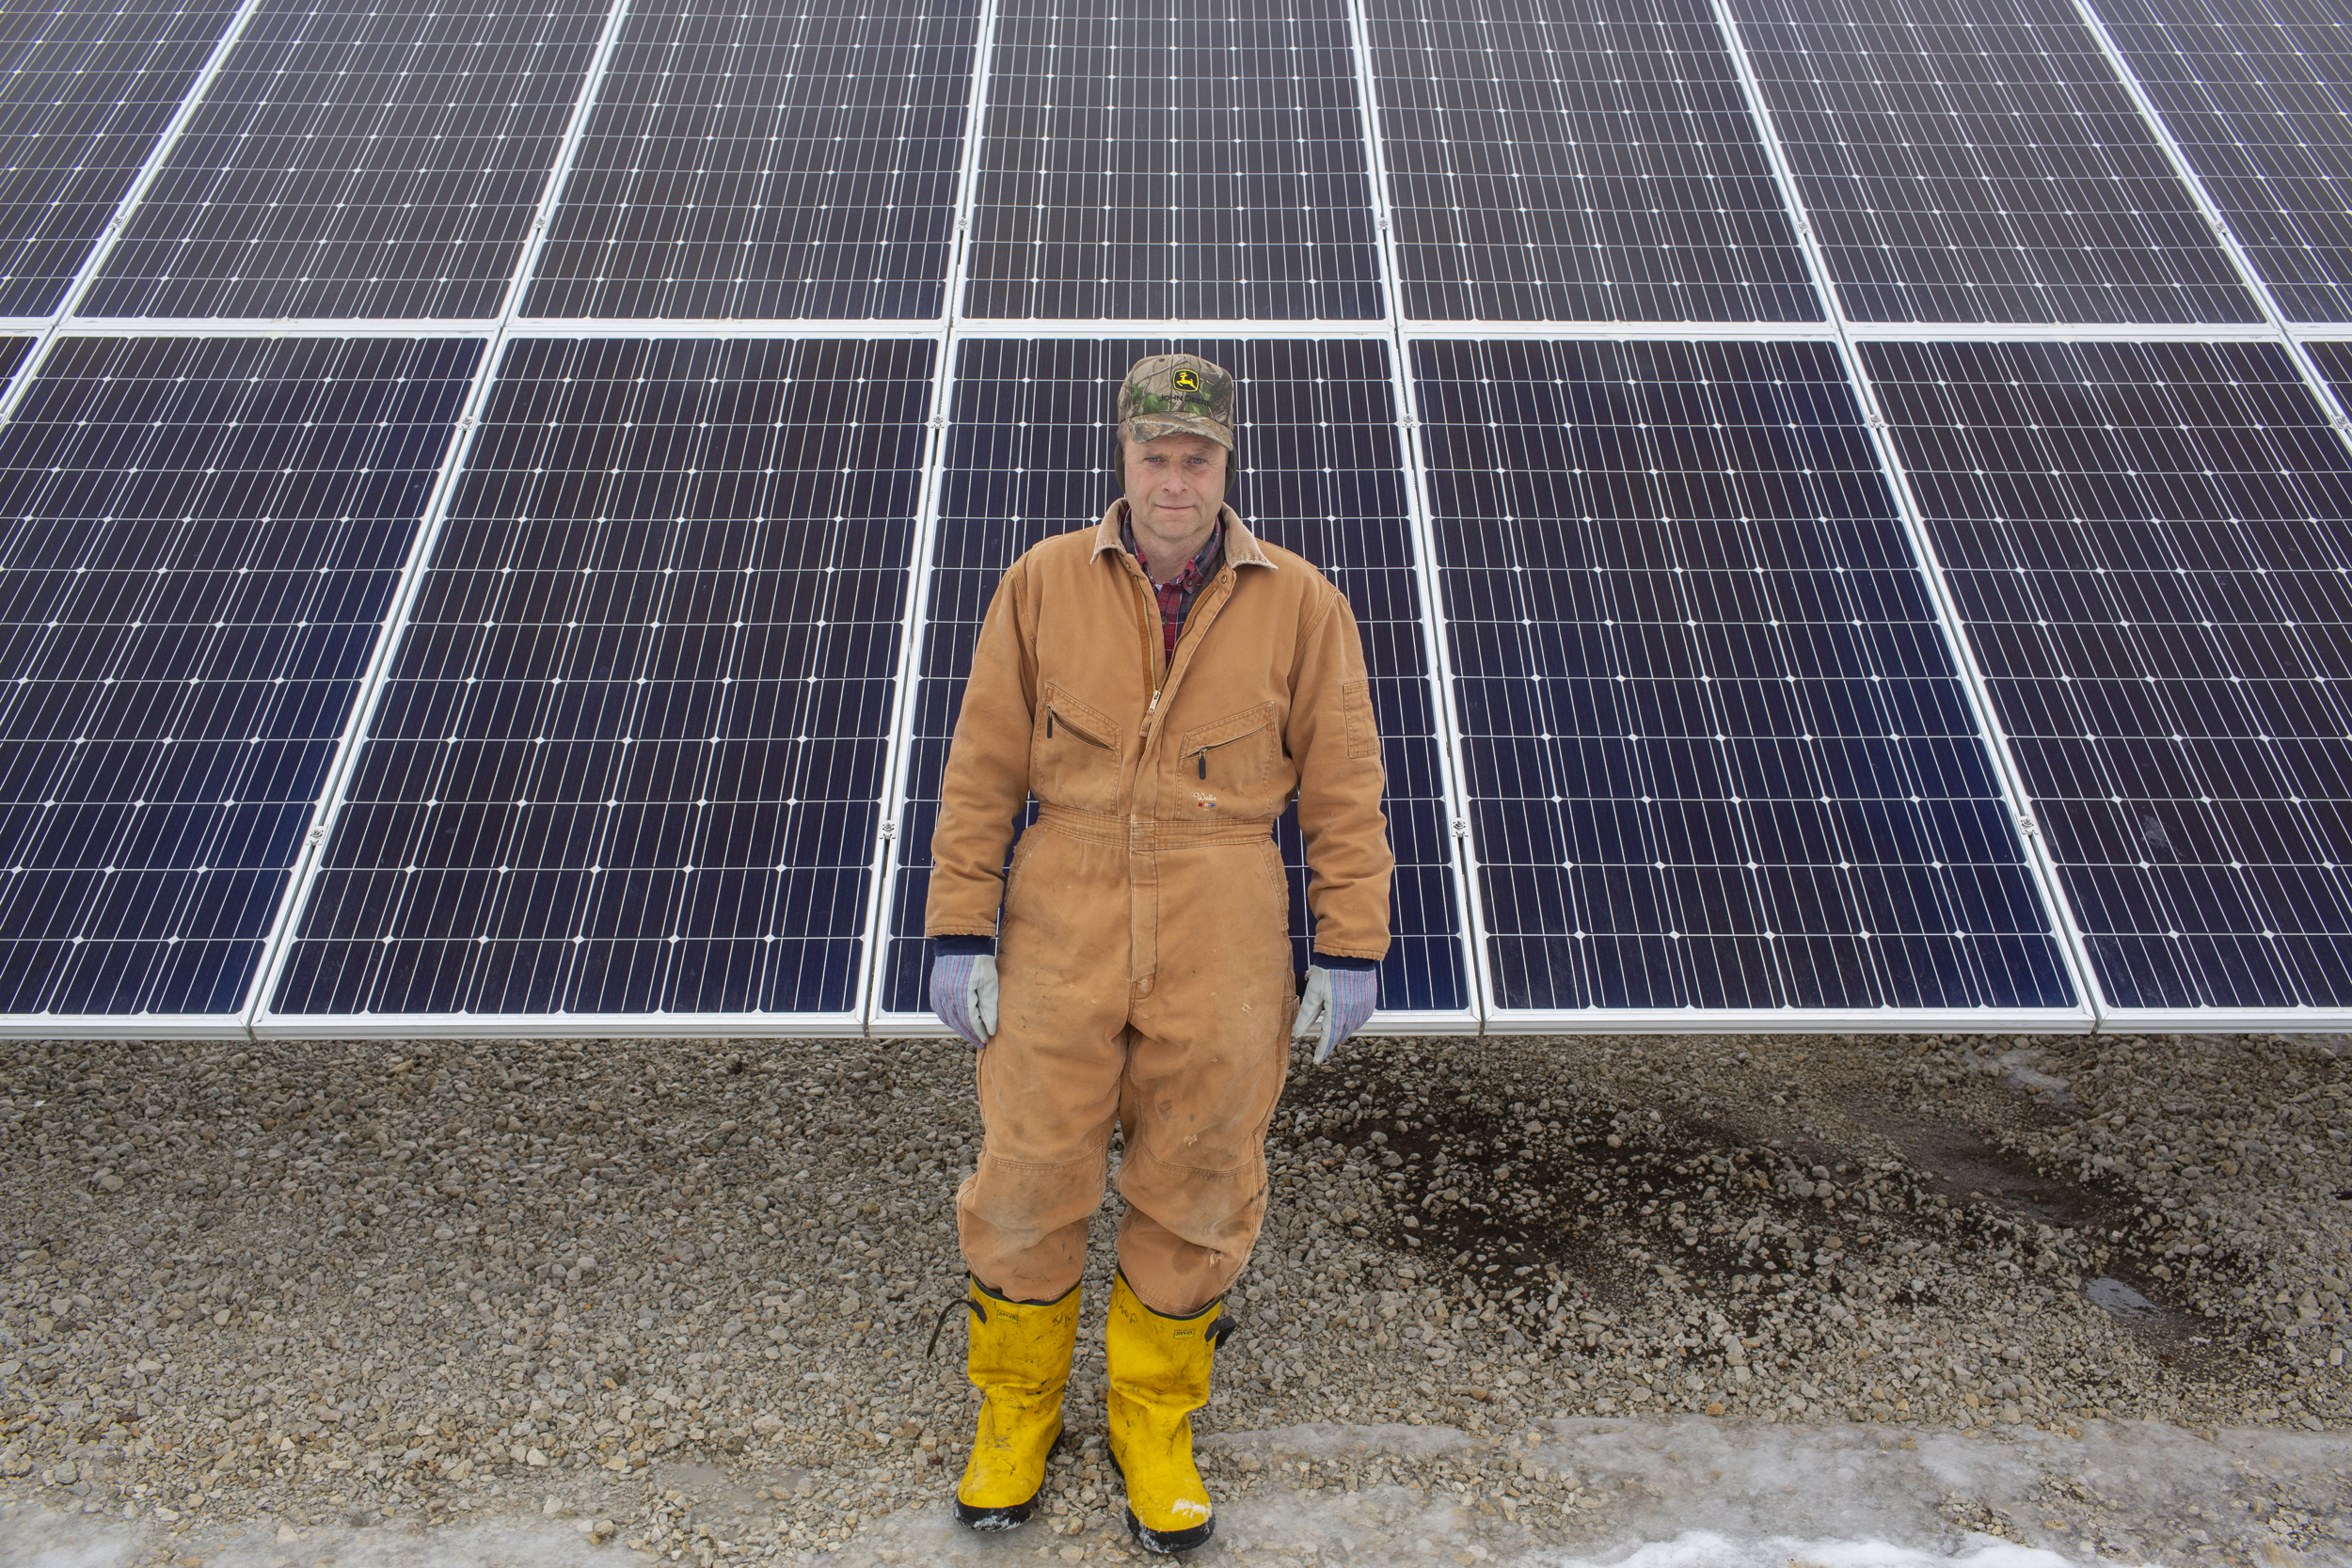 The next money crop for farmers: Solar panels - The